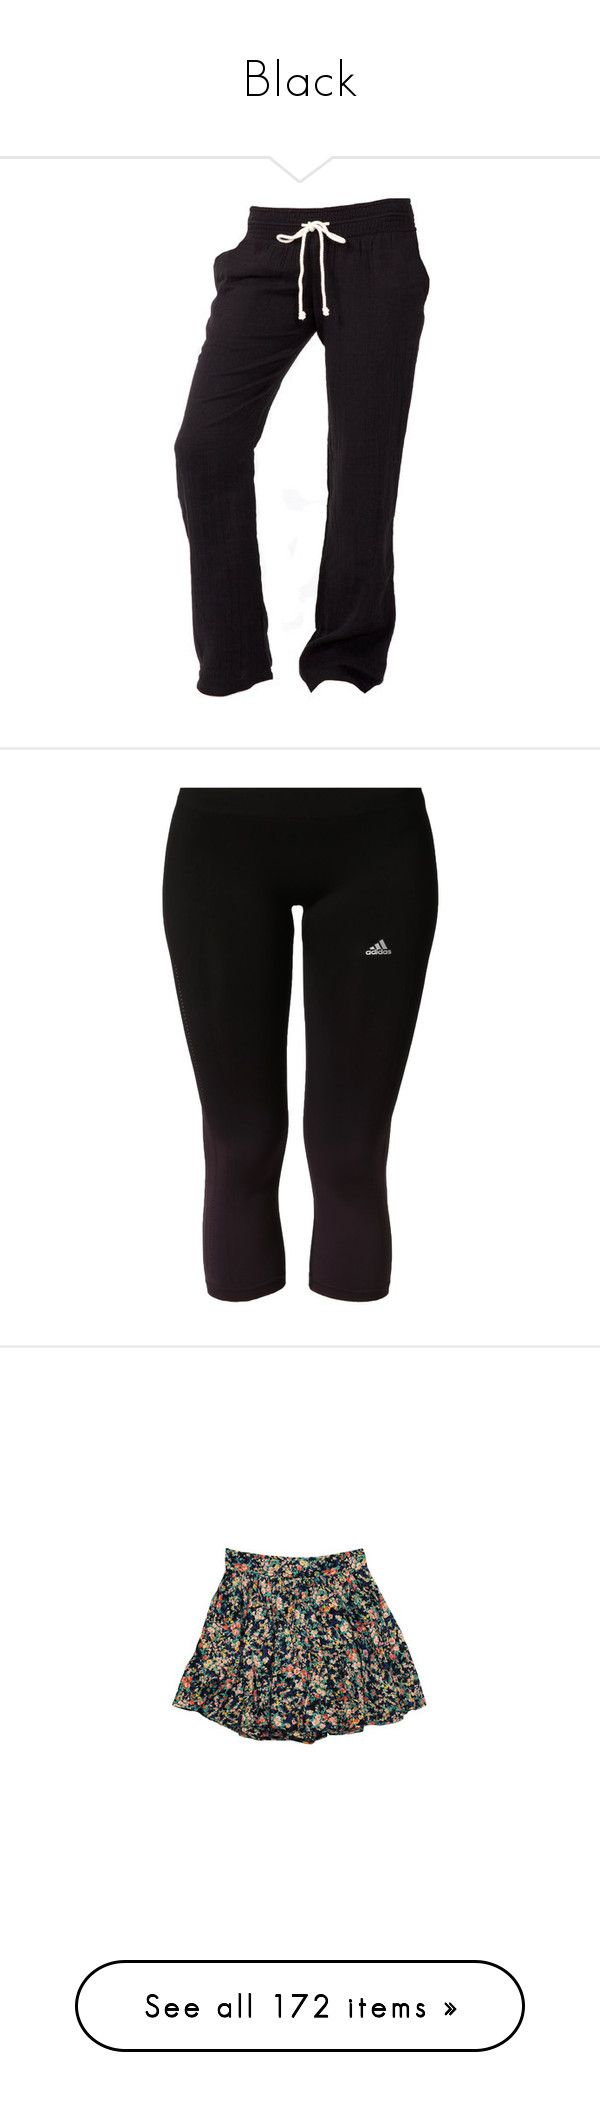 """Black"" by niamhgreen17 ❤ liked on Polyvore featuring pants, bottoms, sweatpants, black, plus size women's fashion, plus size clothing, plus size activewear, plus size activewear pants, dark red and adidas"